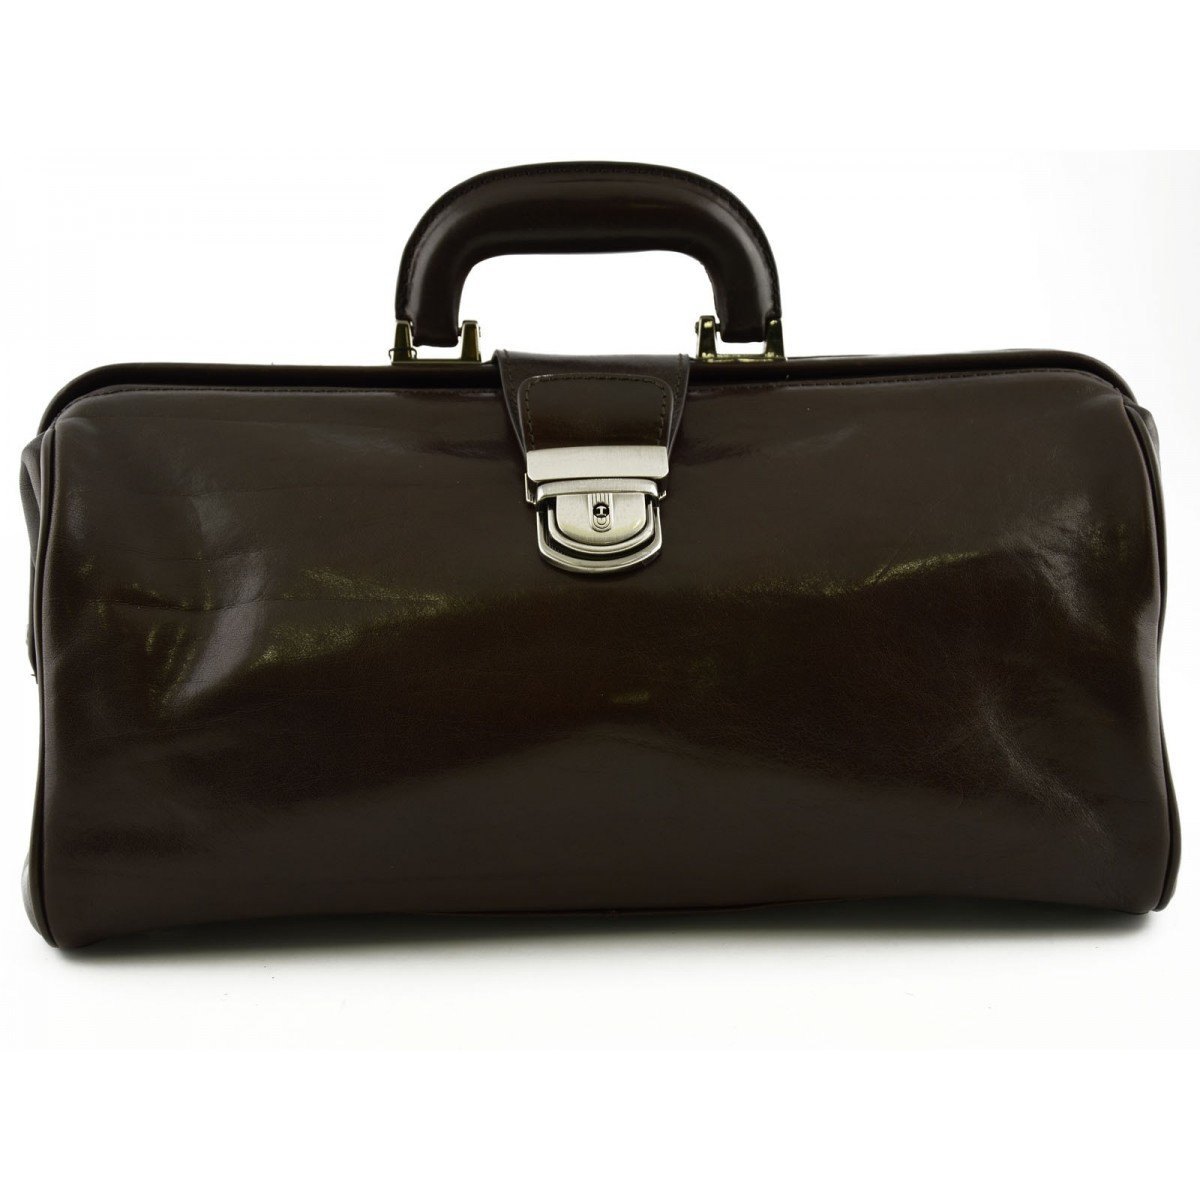 Made In Italy Genuine Leather Doctor's Bag Color Dark Brown - Business Bag   B01LFEO9N8